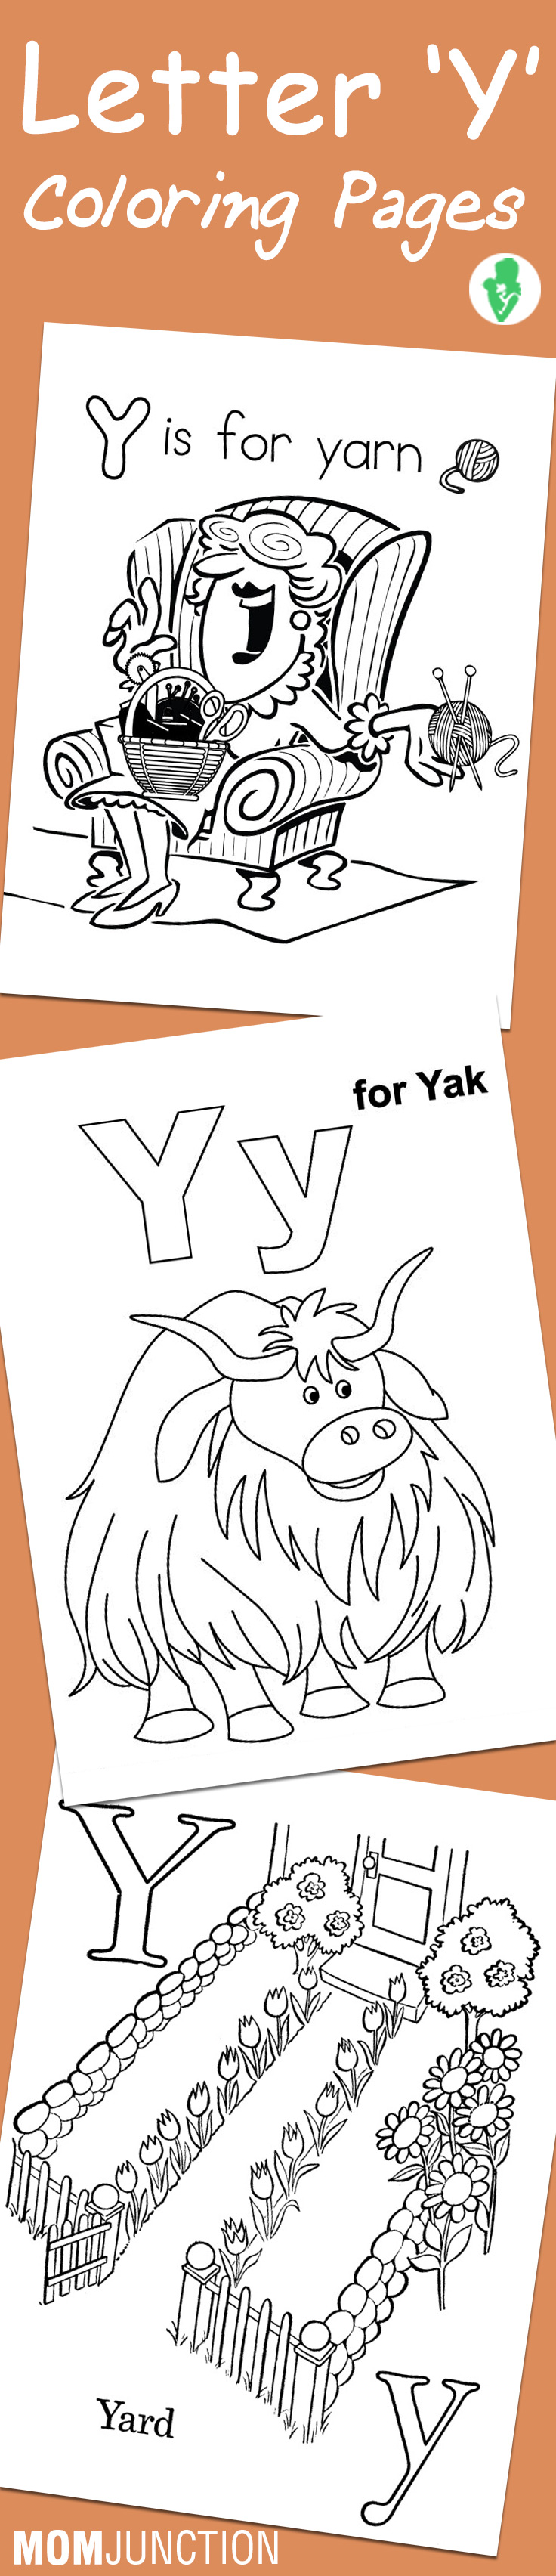 Coloring pages yak - Coloring Pages Yak 51